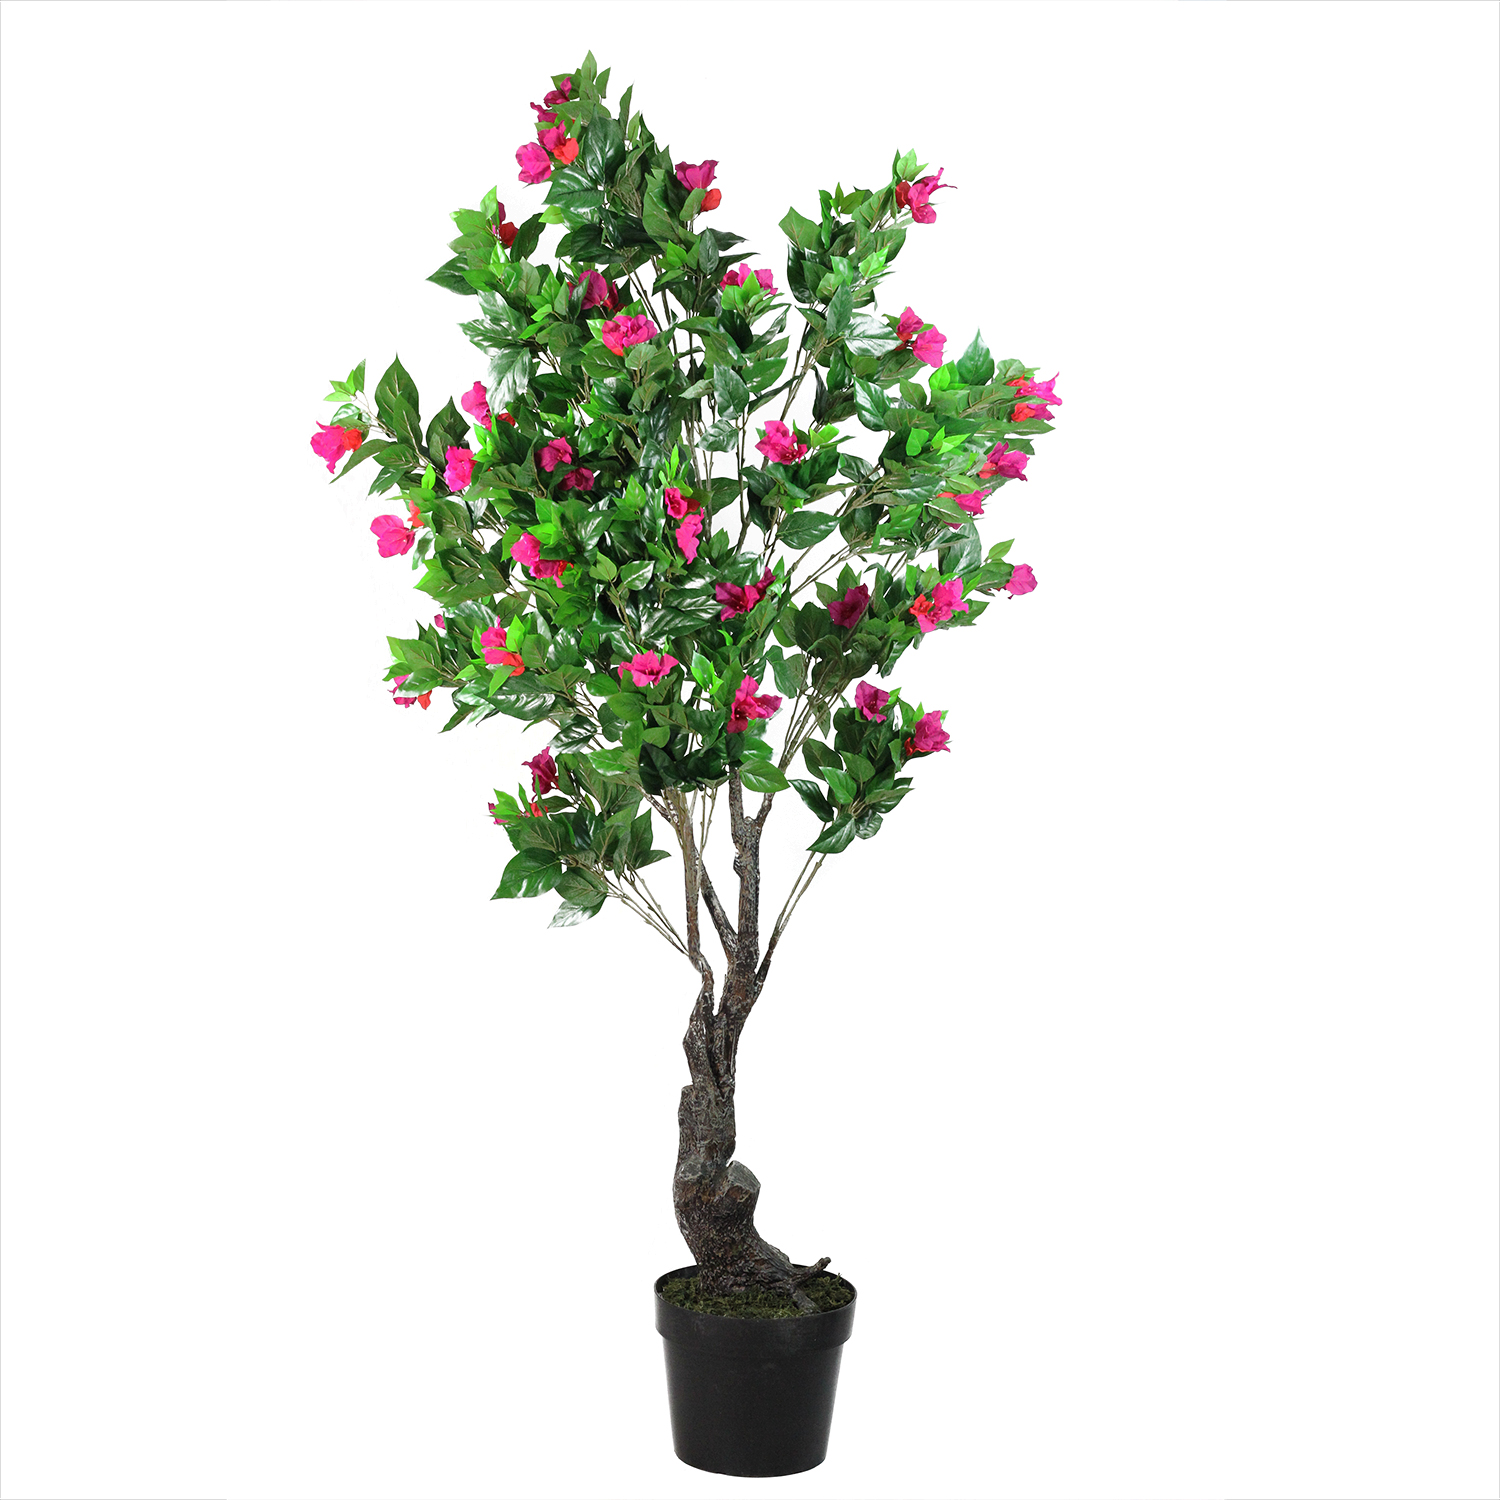 Potted Artificial Green, Pink and Red Bougainvillea Tree